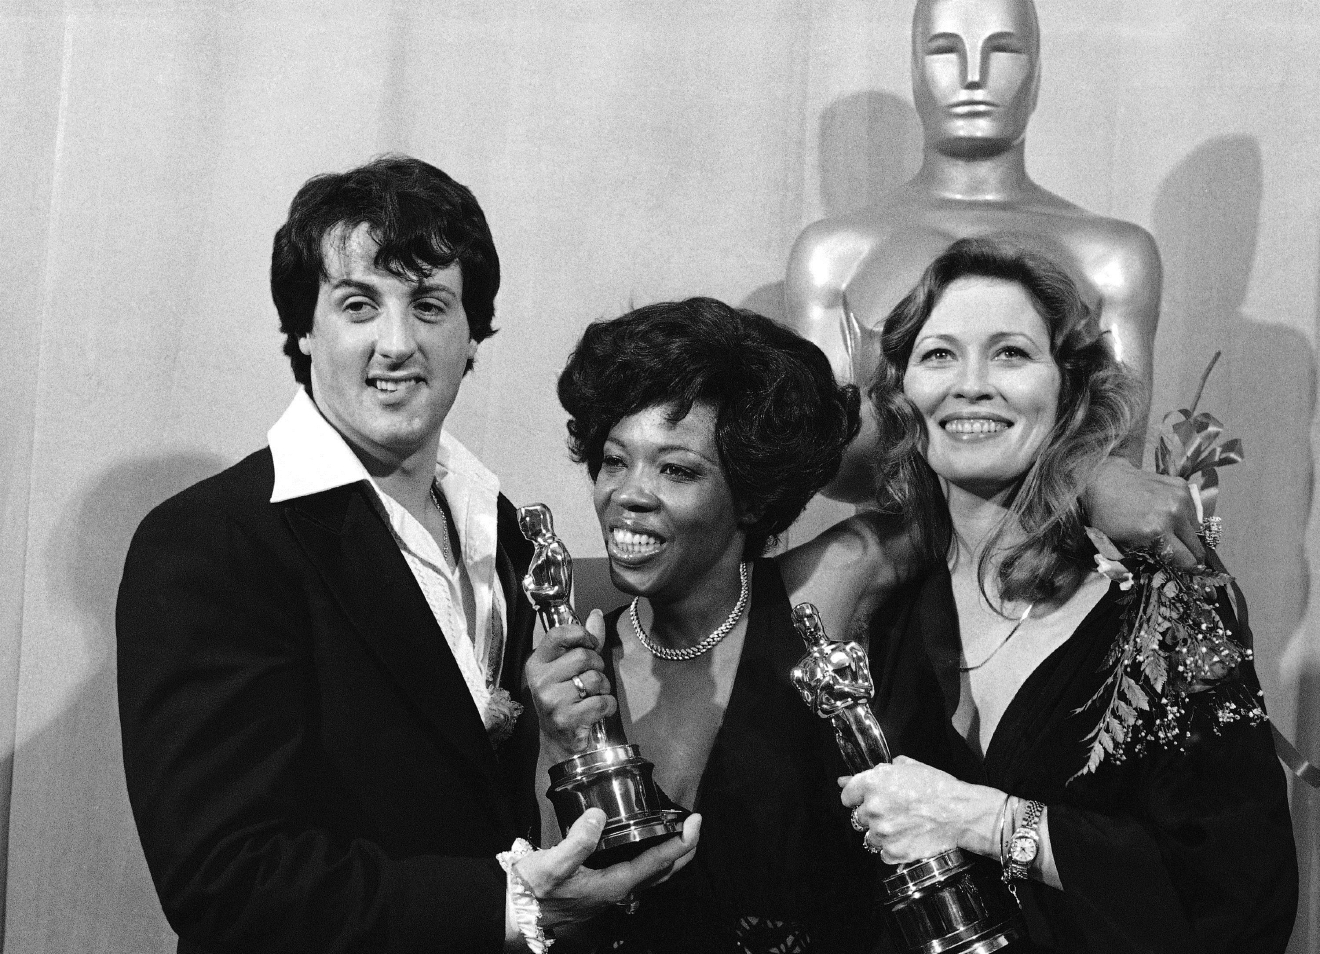 "HOLD FOR MONDAY, NOV. 21, STORY BY ERRIN HAINES WHACK – FILE – In this March 28, 1977, file photo, actor and screenwriter Sylvester Stallone, left, poses with Eletha Finch, center, widow of actor Peter Finch, and actress Faye Dunaway, right, at the Academy Awards in Los Angeles. Four decades after the Nov. 21, 1976, premiere of ""Rocky,"" the movie's reach is international, and the title character's underdog tale of determination, grit and sleepy-eyed charm still resonates with fans. (AP Photo, File)"